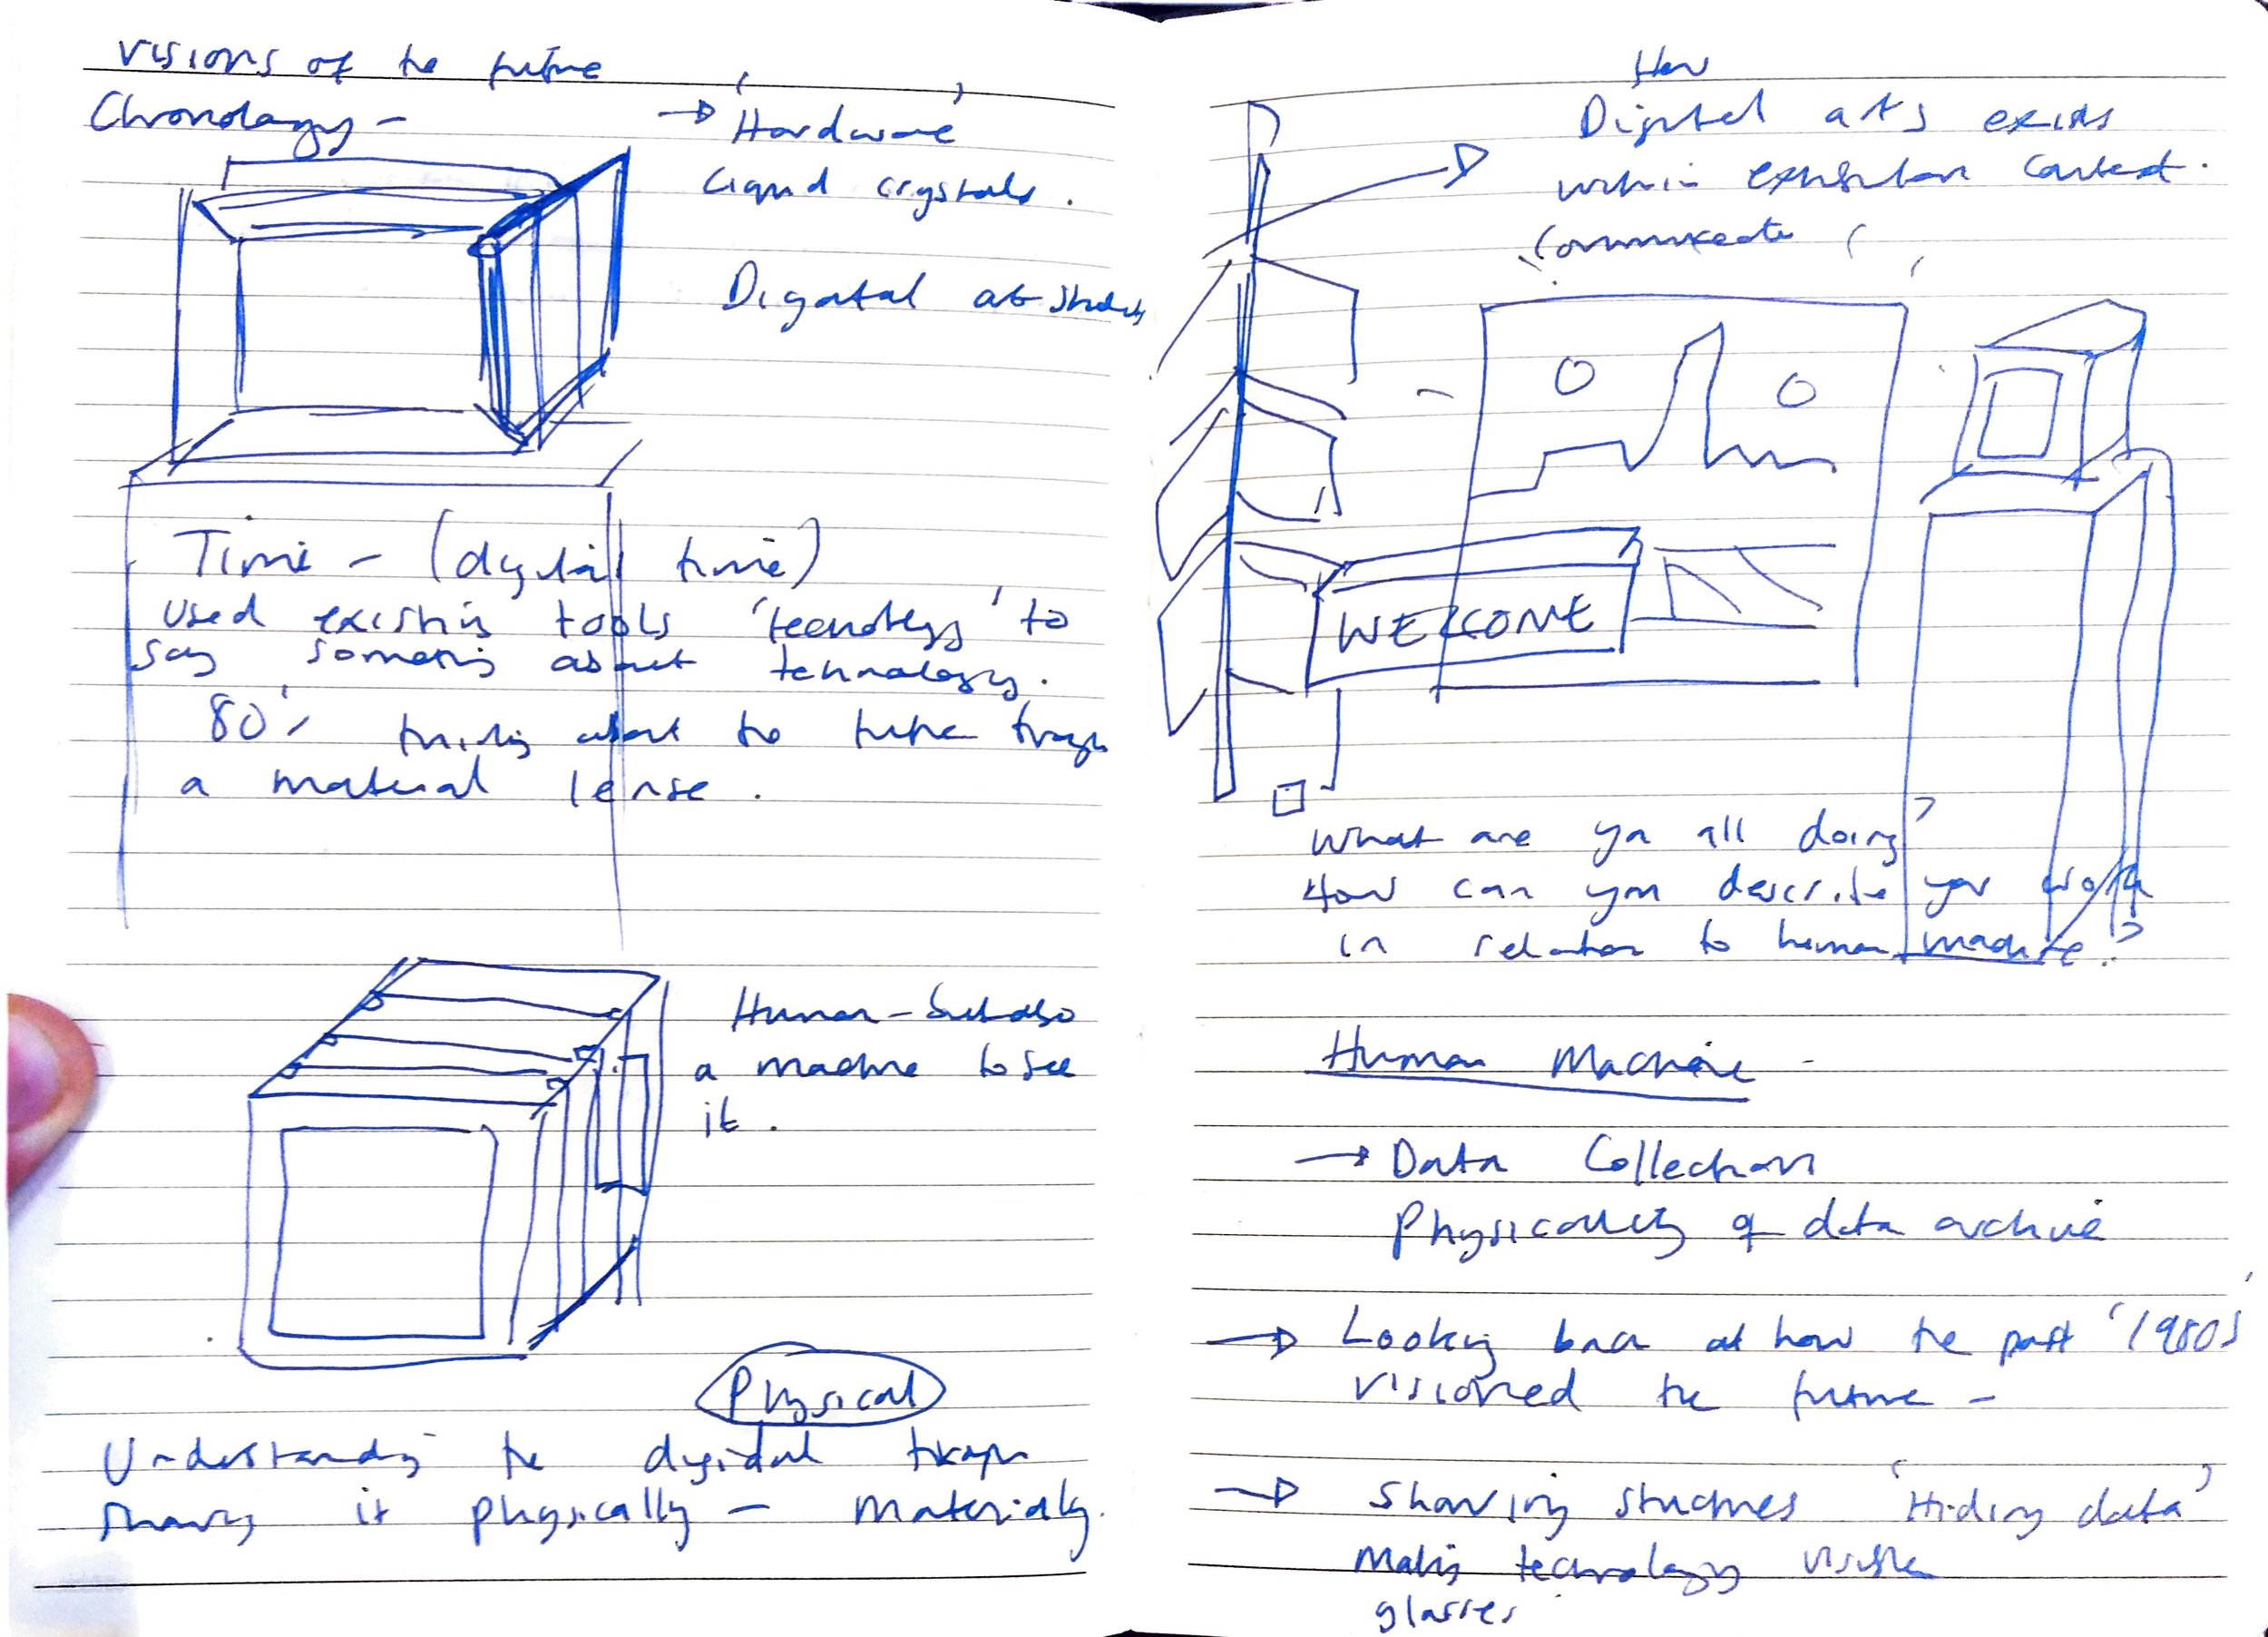 black and pink notebooks_Page_51_Image_0001.jpg